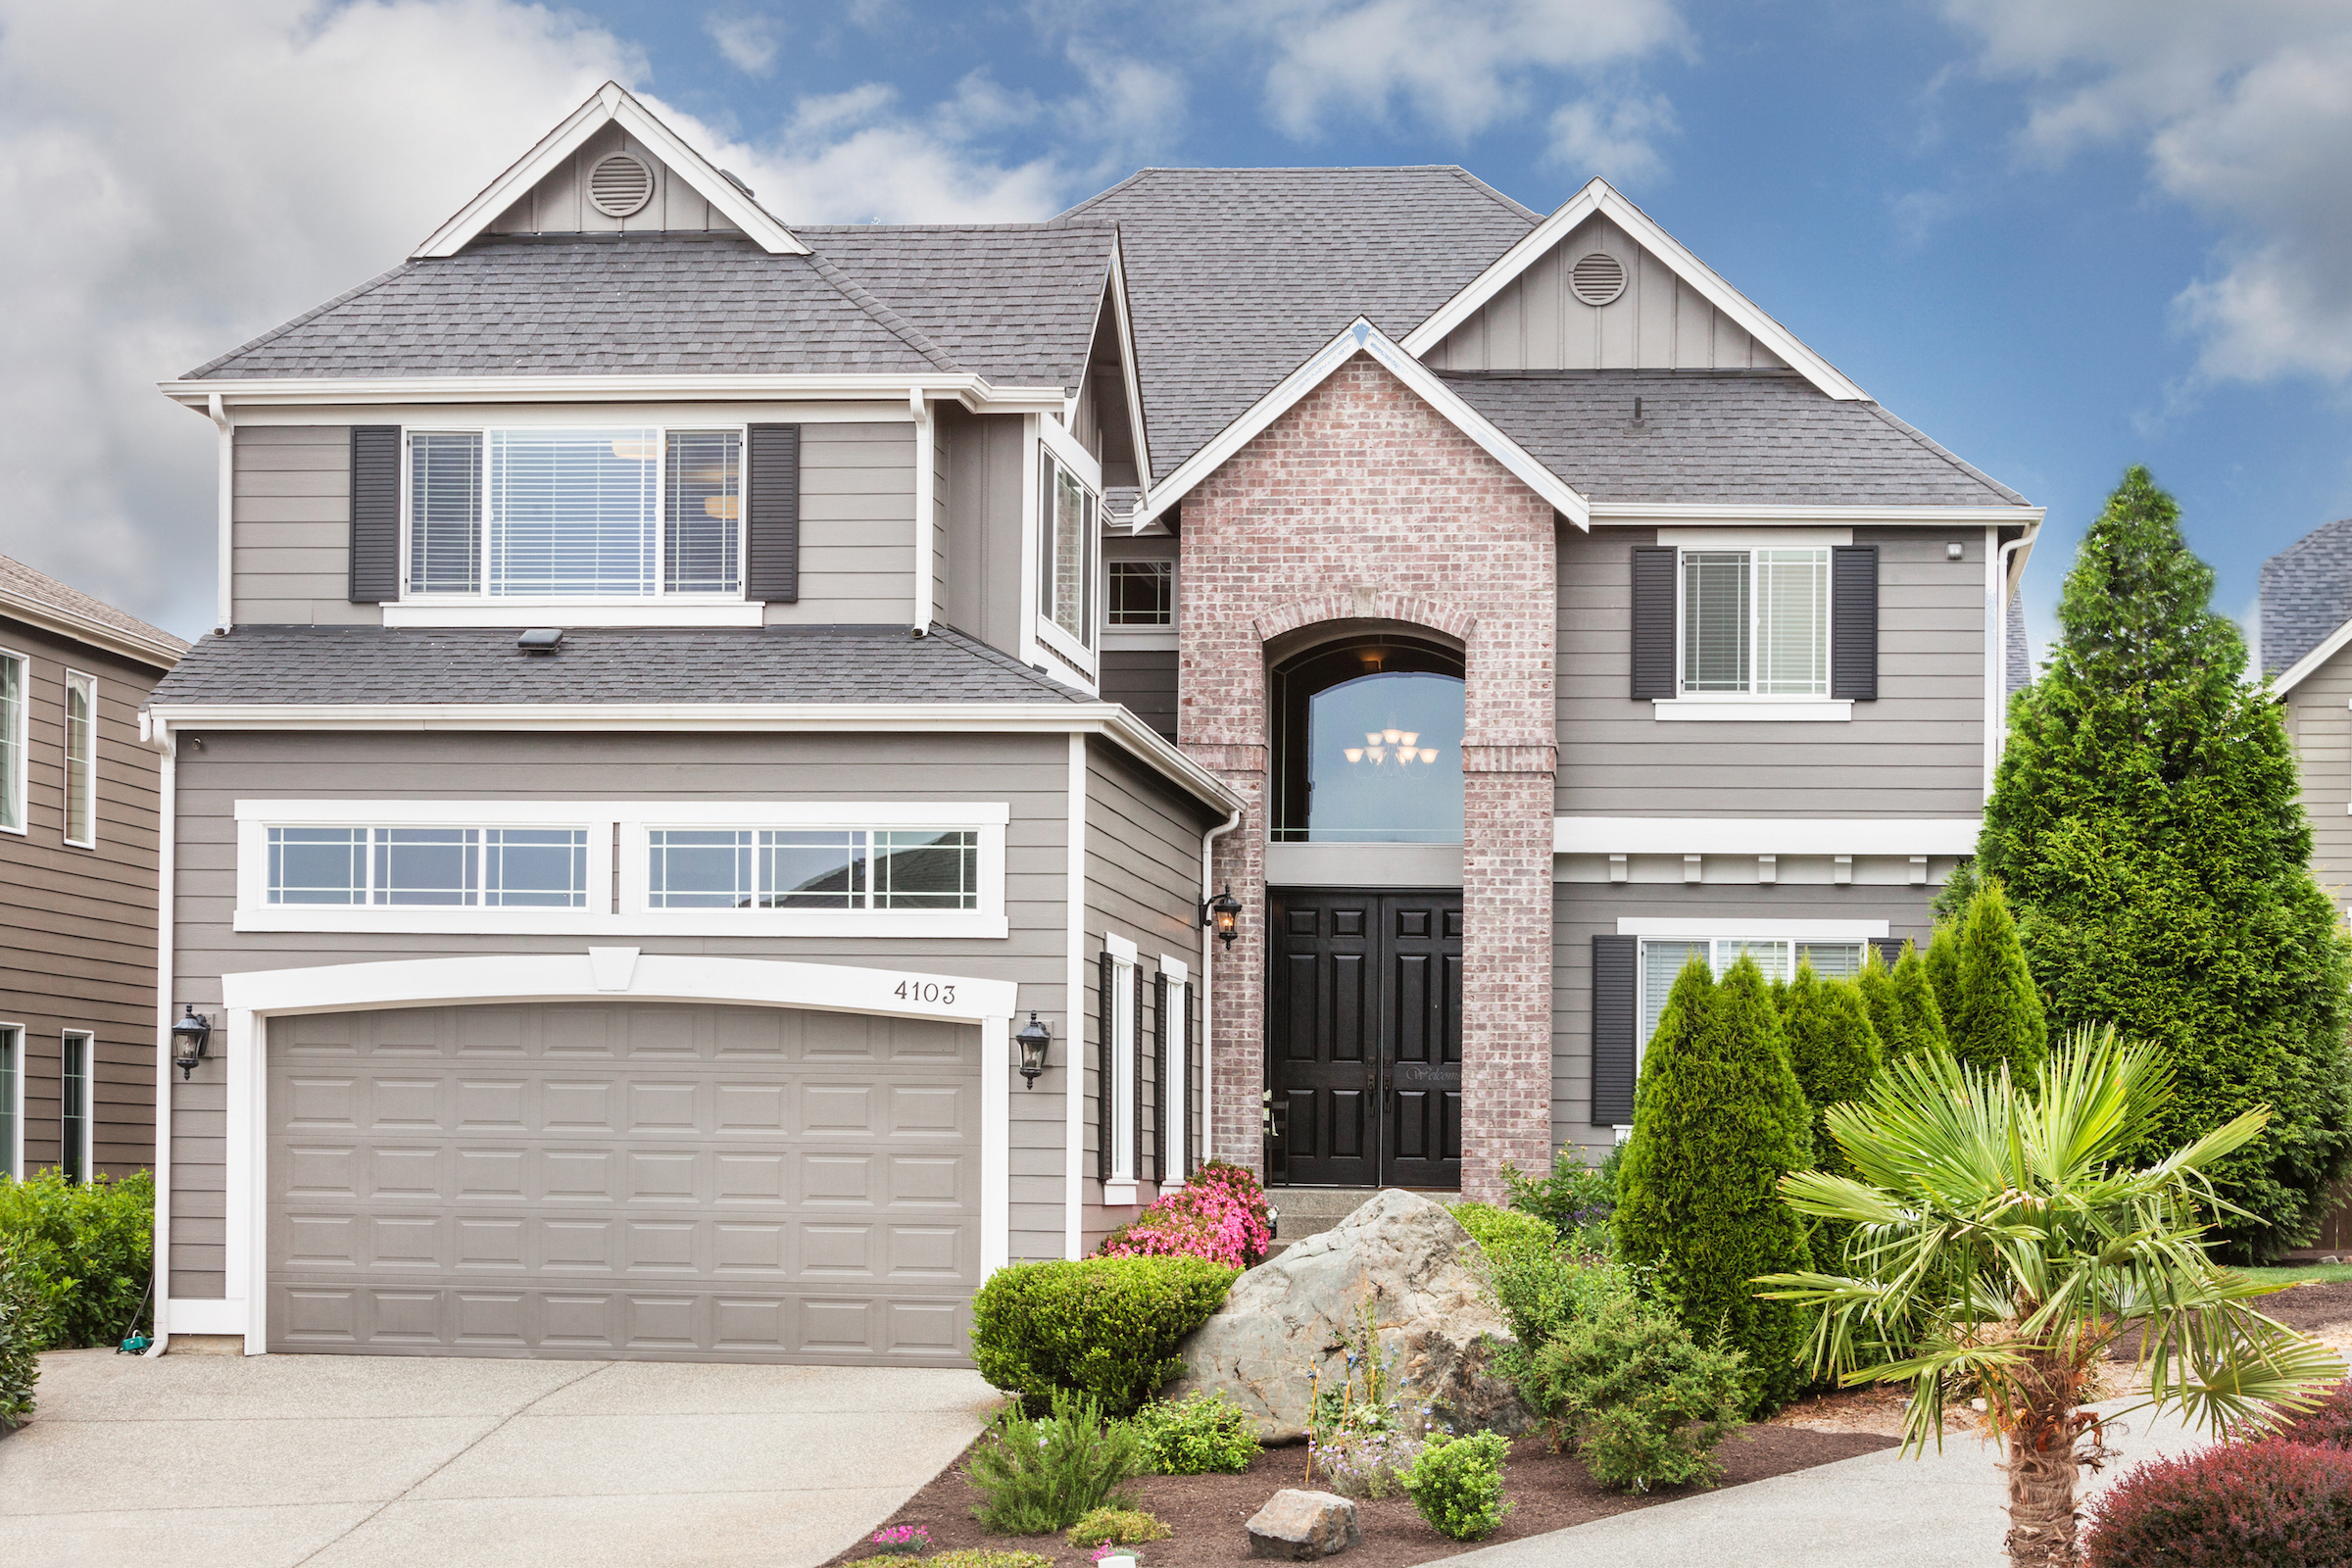 Single Family Home for Sale at Sunset Meadows Estate 4103 163rd Place SE Bothell, Washington 98012 United States